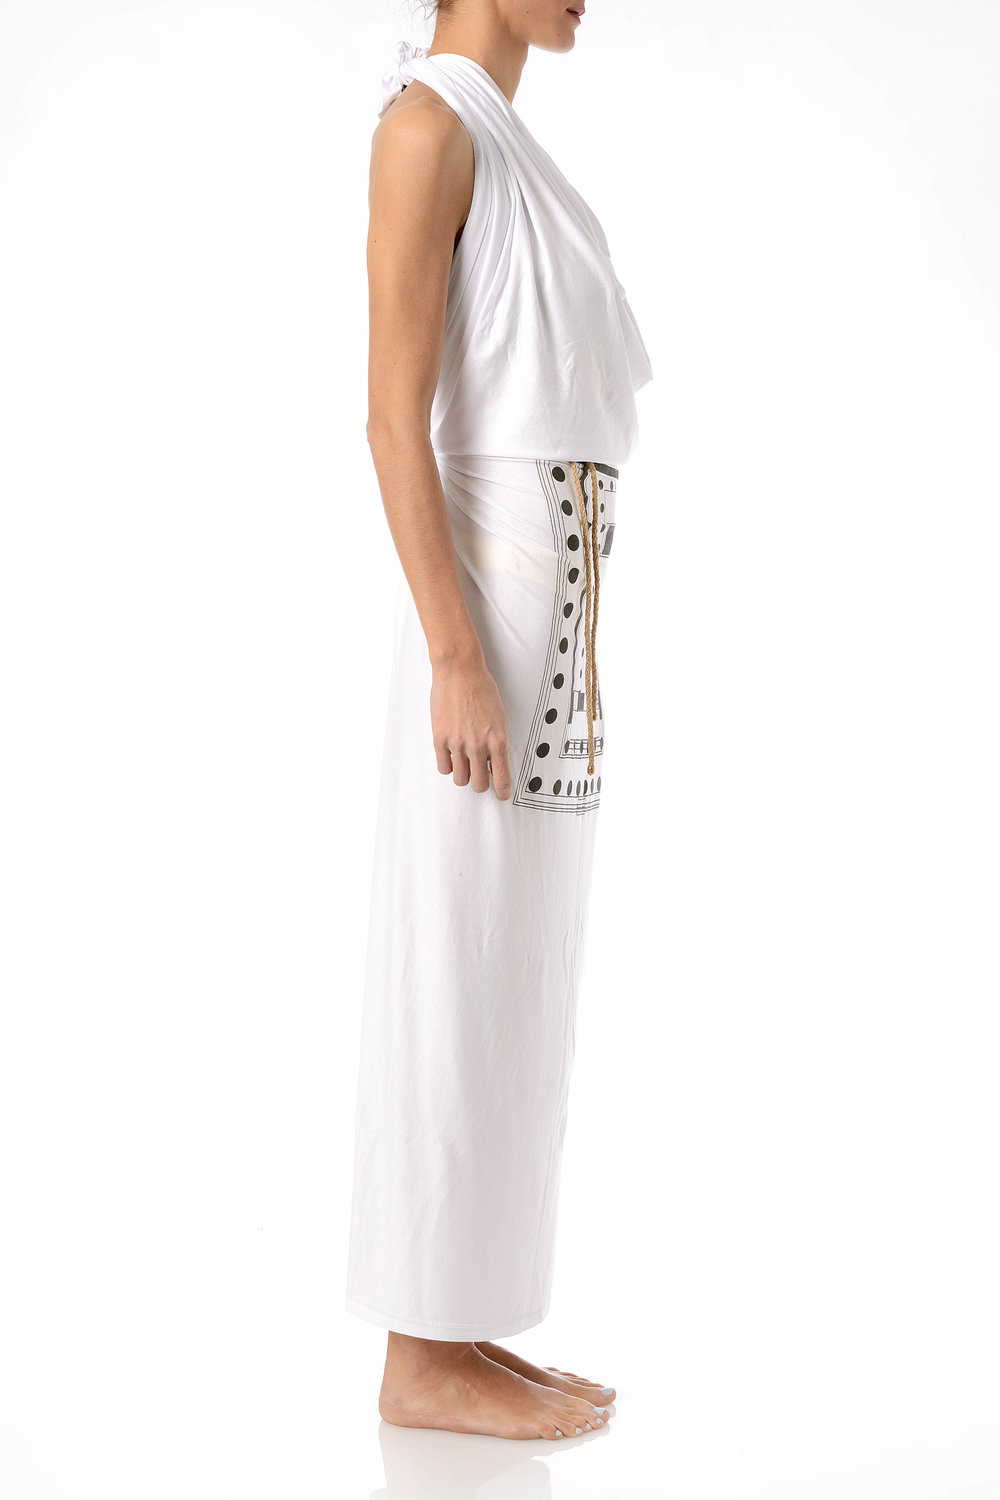 parthenono-white-viscose-long-dress-wraped-on-back-side.jpg